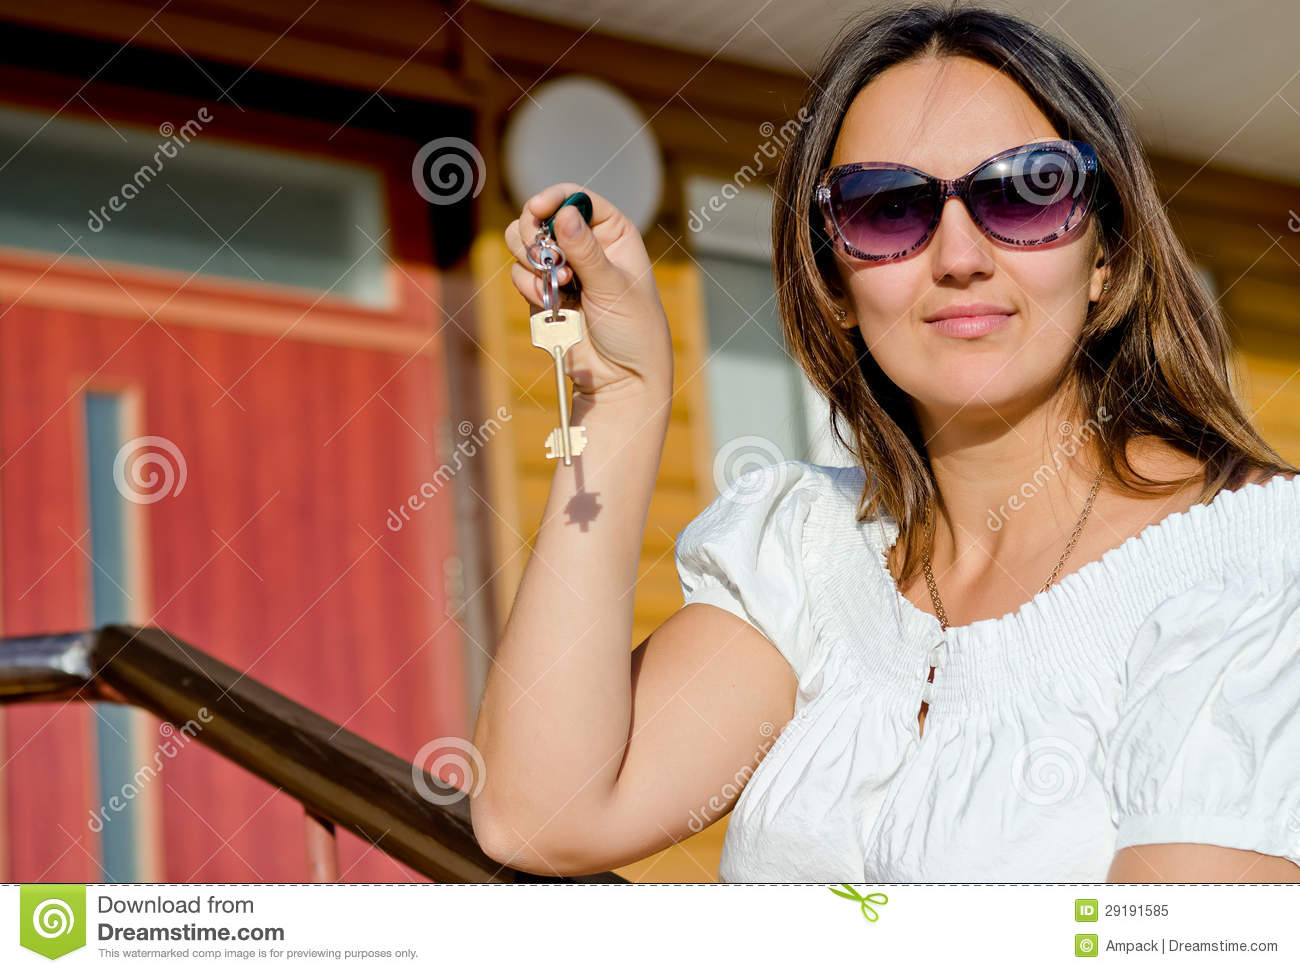 Woman Holding A House Door Key Royalty Free Stock Photo